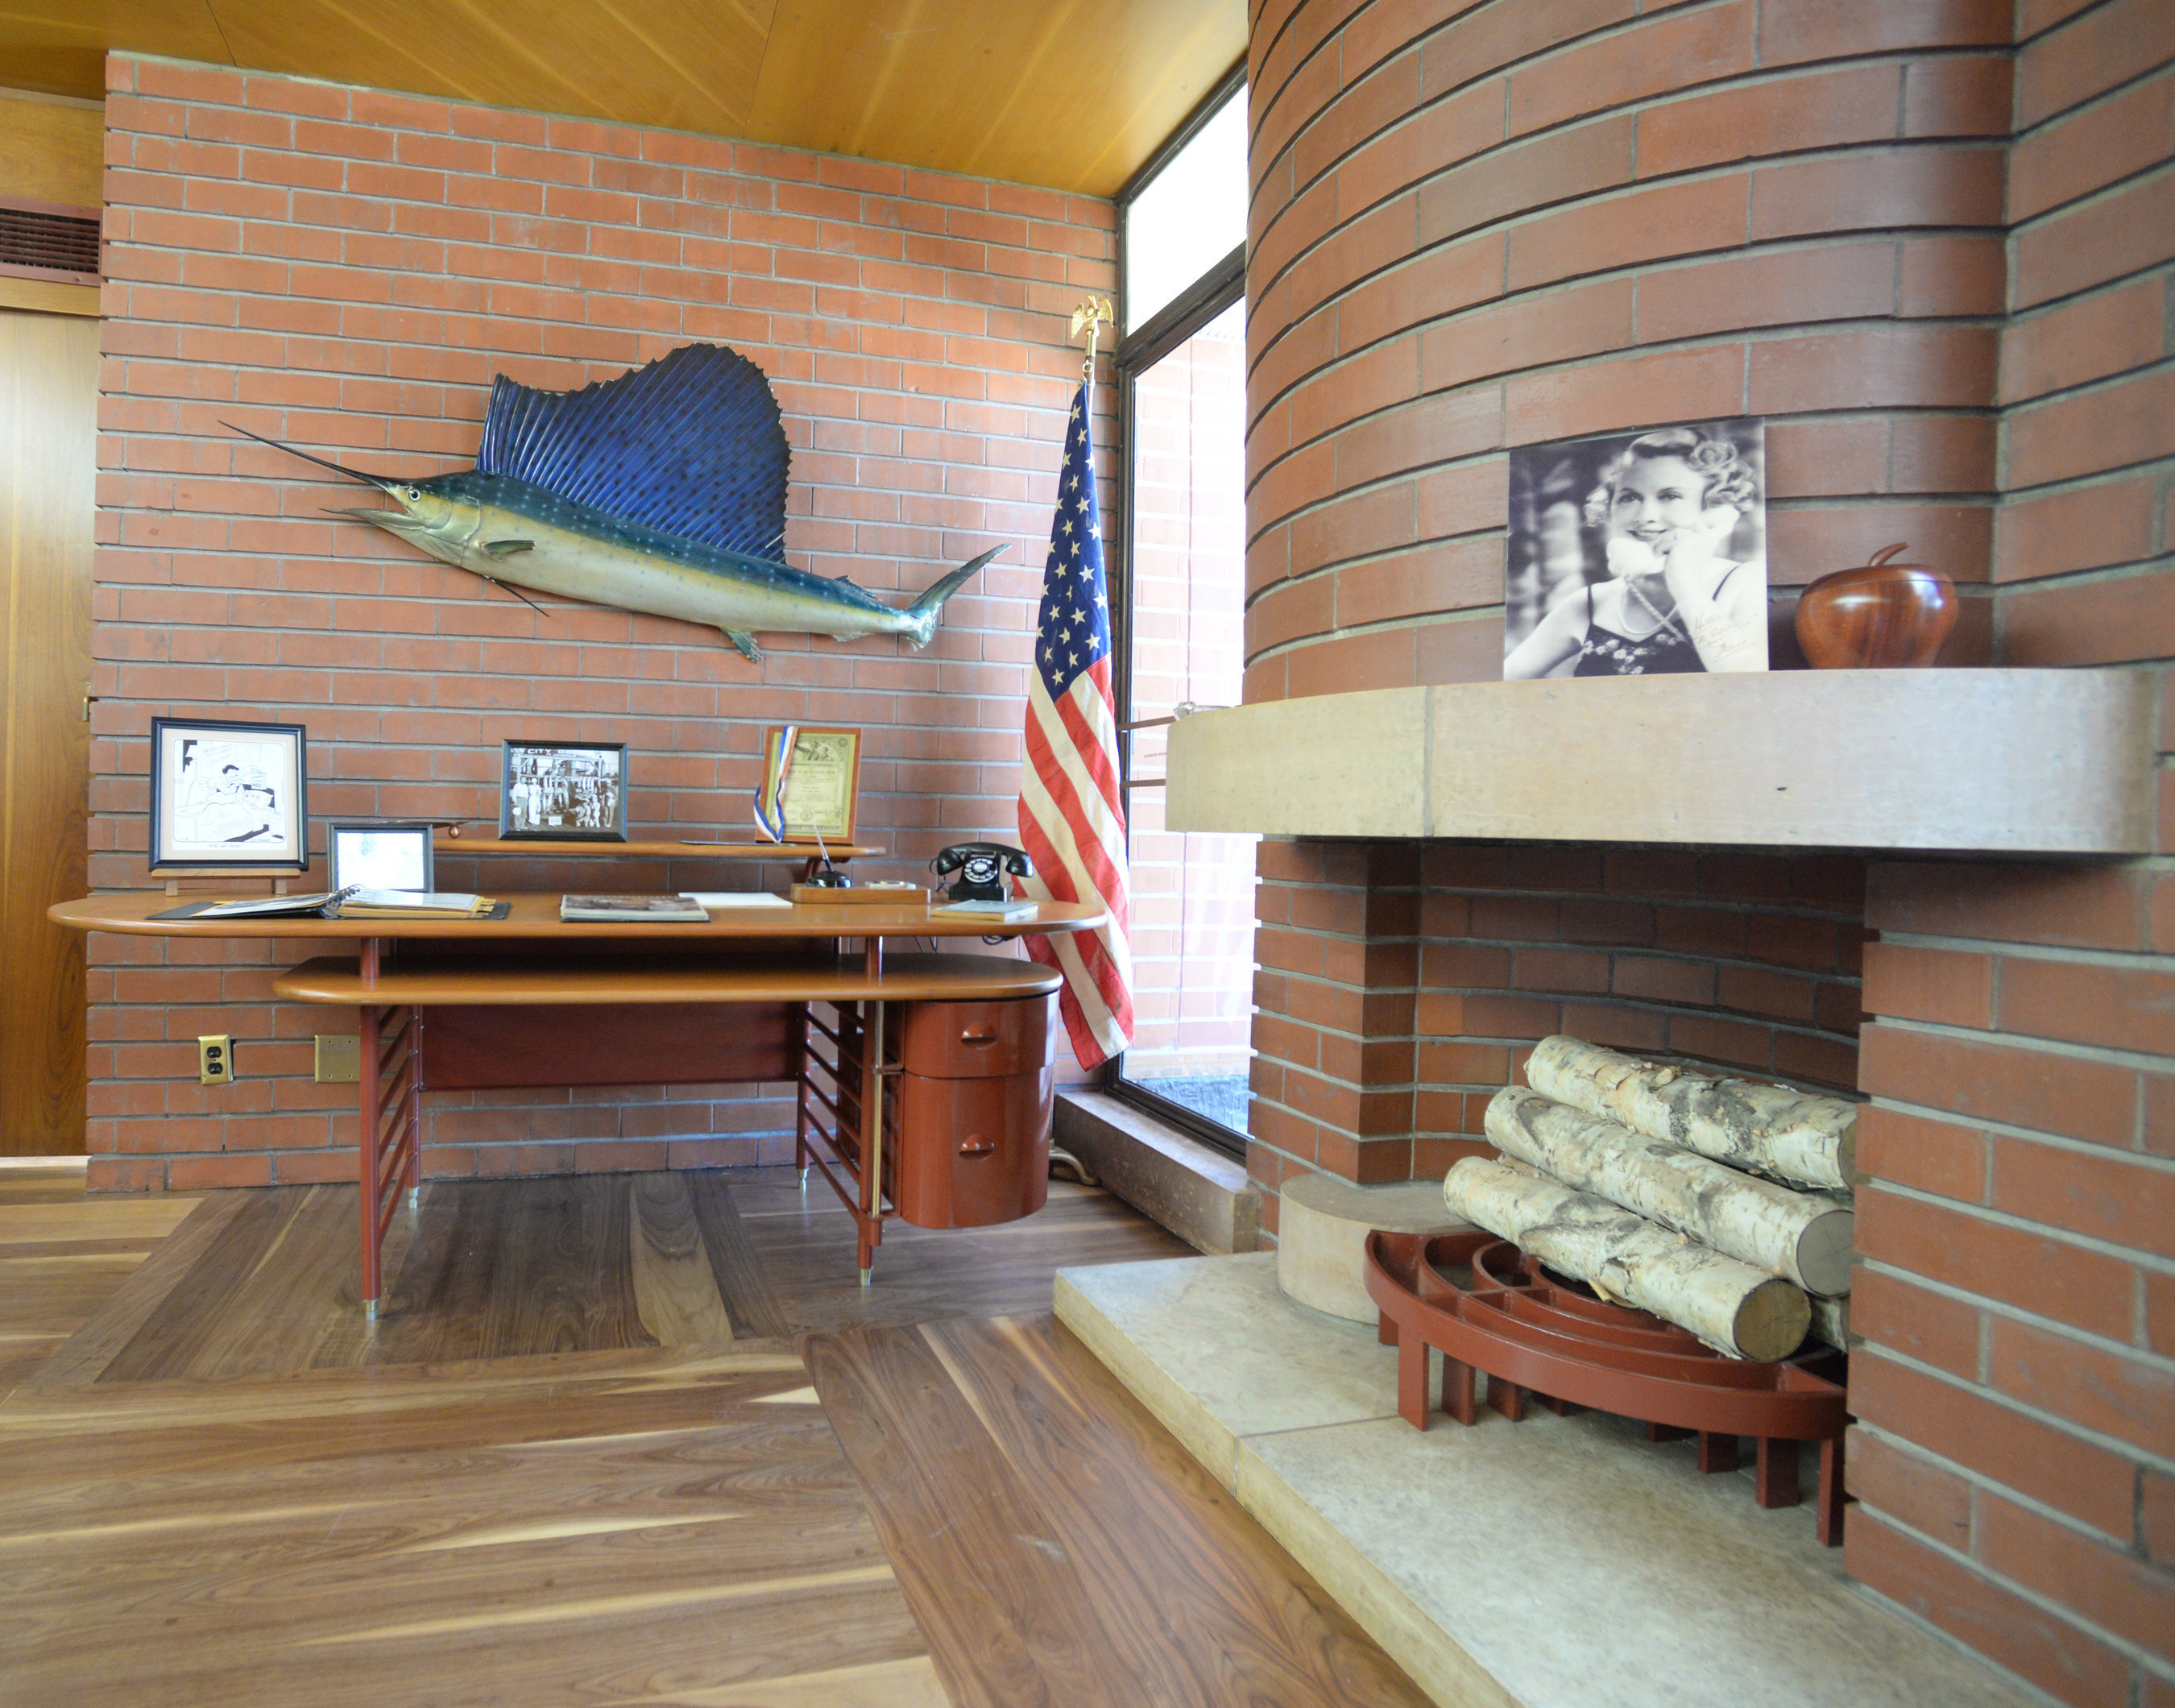 New this year, visitors can explore the refurbished 1940's penthouse office of SC Johnson's third-generation leader H.F. Johnson Jr.